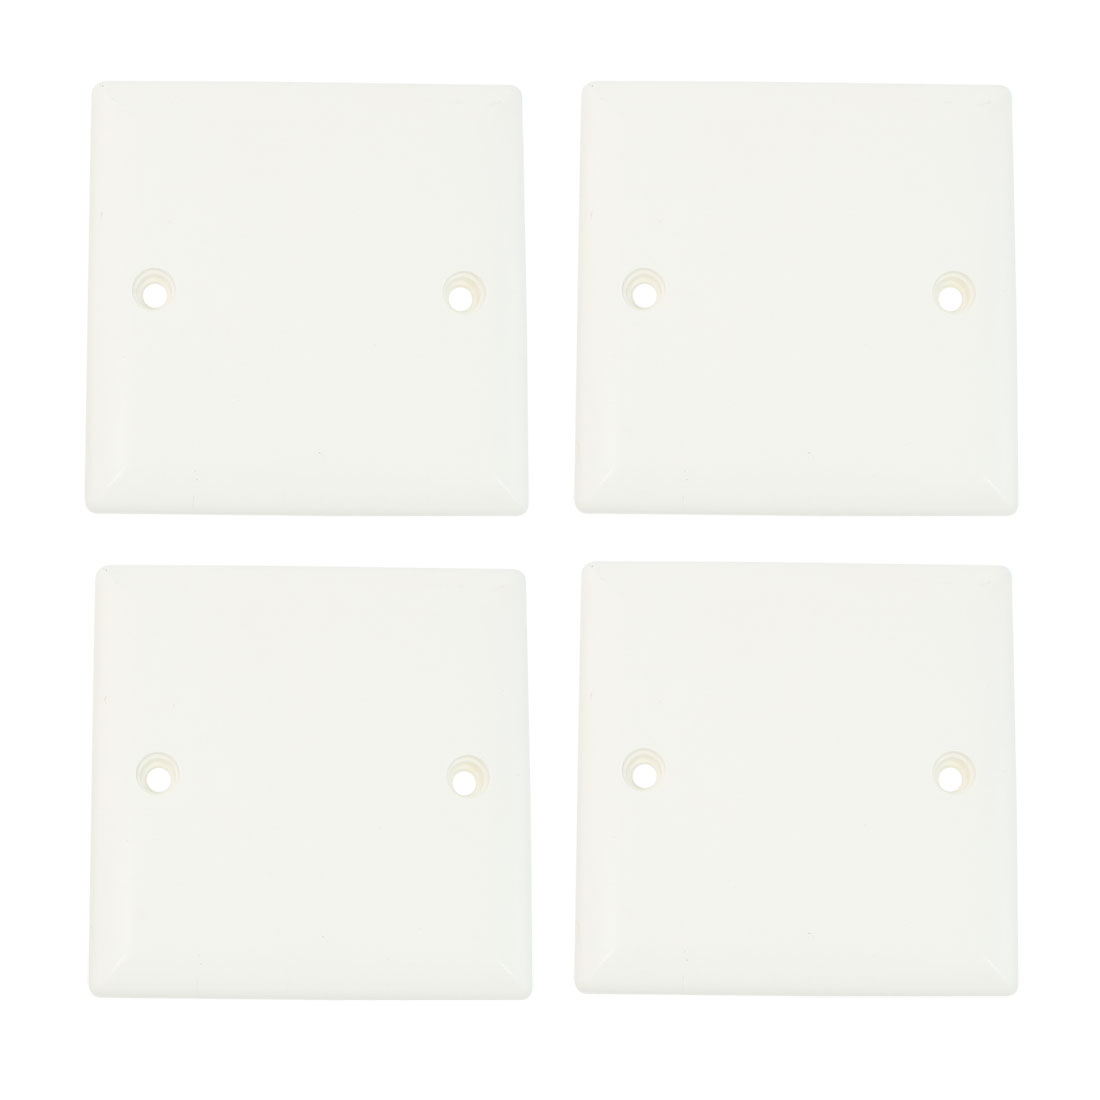 4 Pcs 86x86mm White PVC Square Wallplate Switch Junction Box Cover Panel